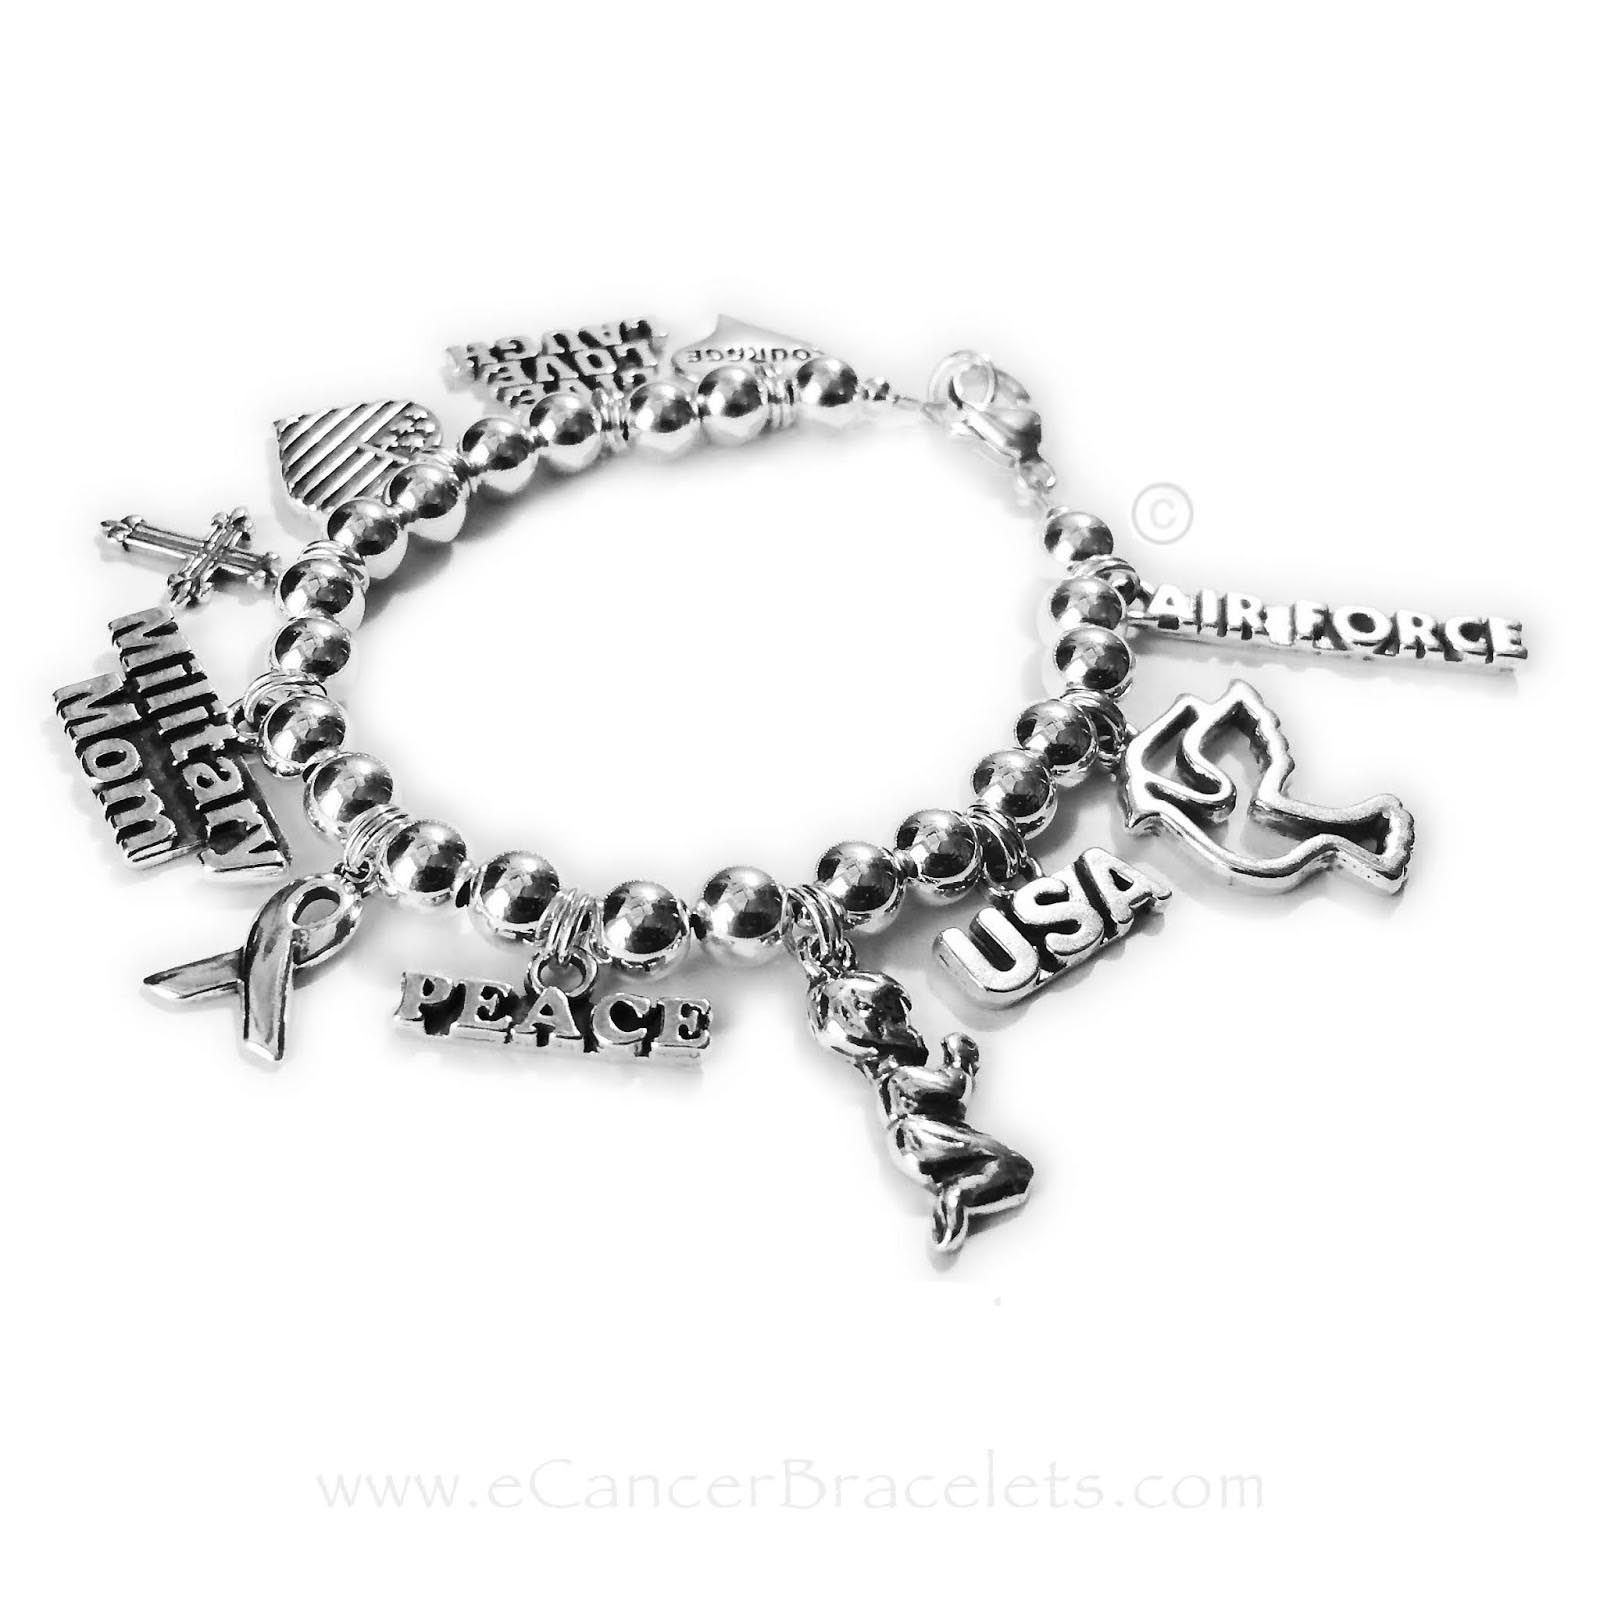 Cancer Awareness Ribbon Message Charm Bracelet - CBB-CB-2 Charms added: Courage in a Heart charm, Live Love Laugh charm, Heart Flag charm, Fancy Cross Chrarm, Military Mom Charm, Ribbon Charm, Peace Charm, Boy Praying Charm, USA Charm, Dove Charm, Air Force Charm.